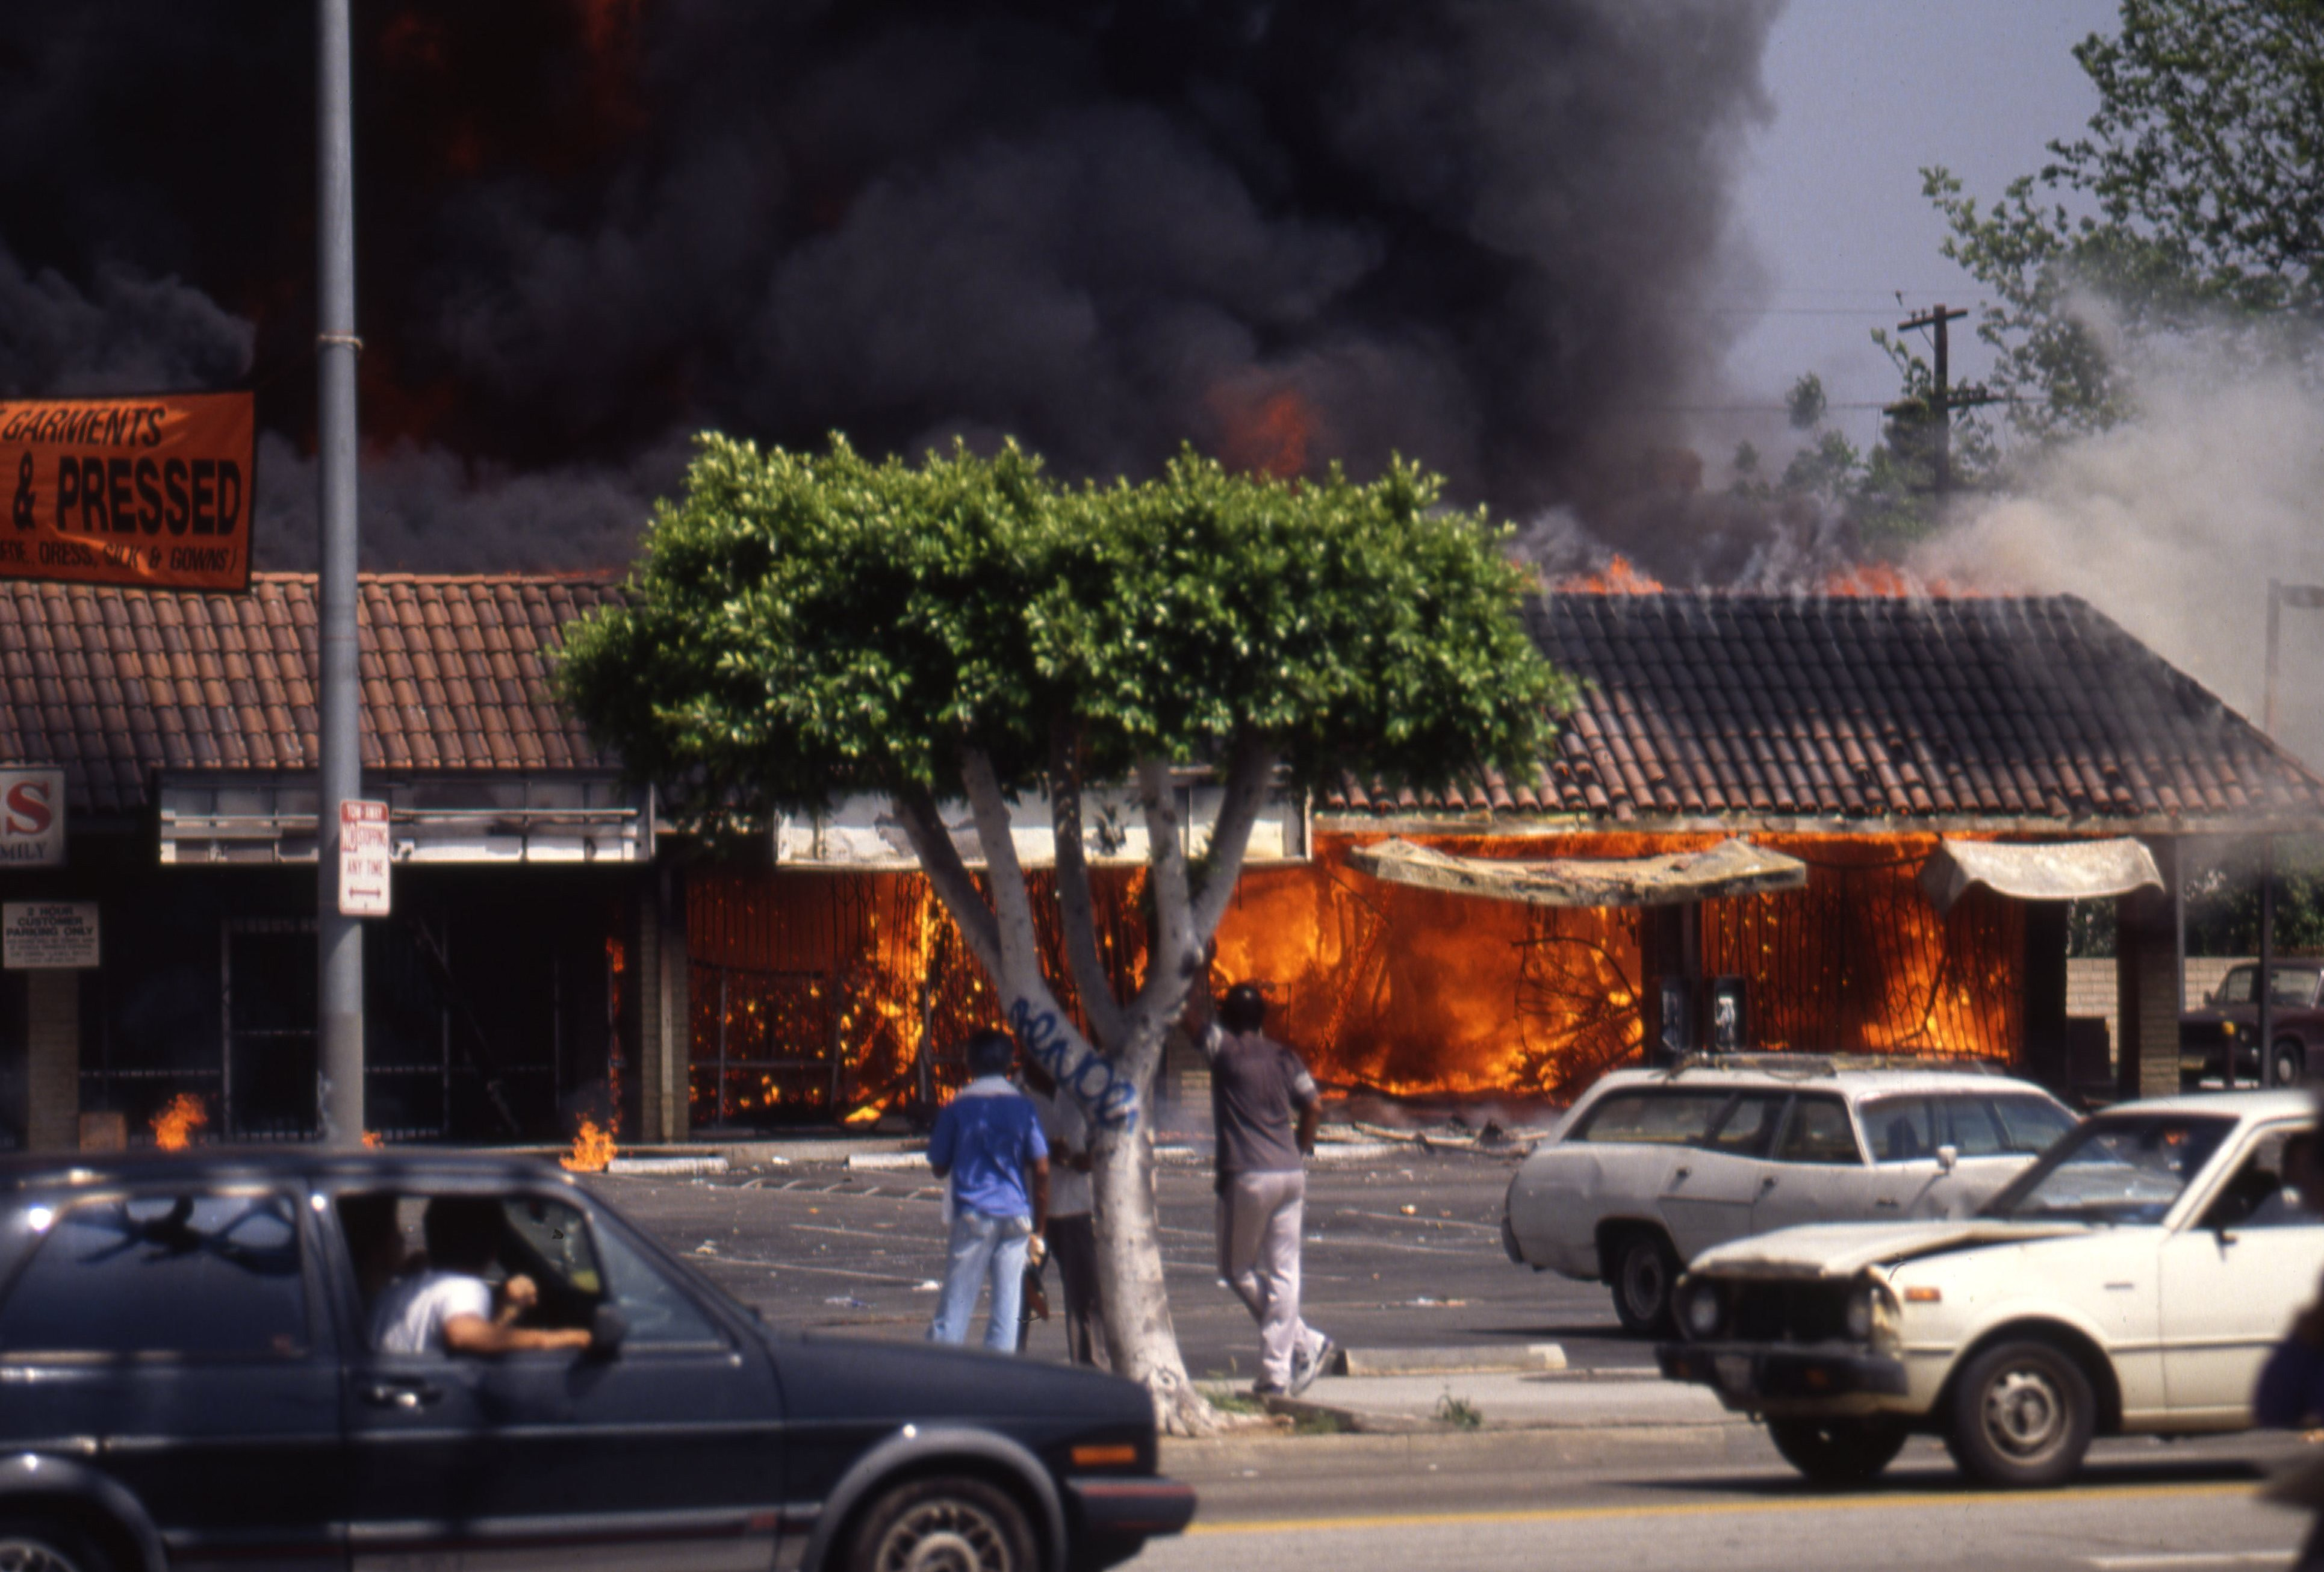 LA Riots in Reaction to the Rodney King Verdict